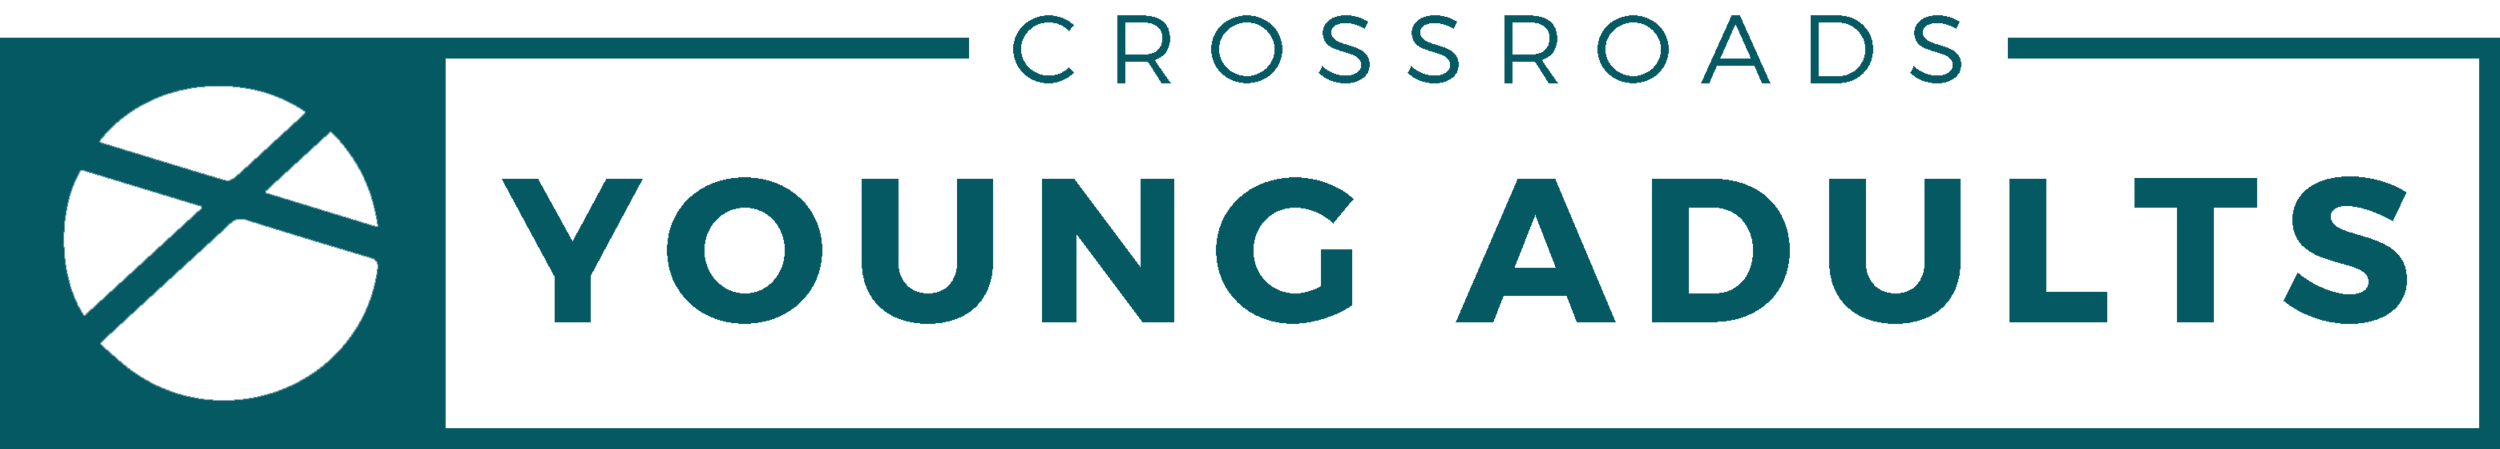 2017_Young Adults logo_dark teal.png